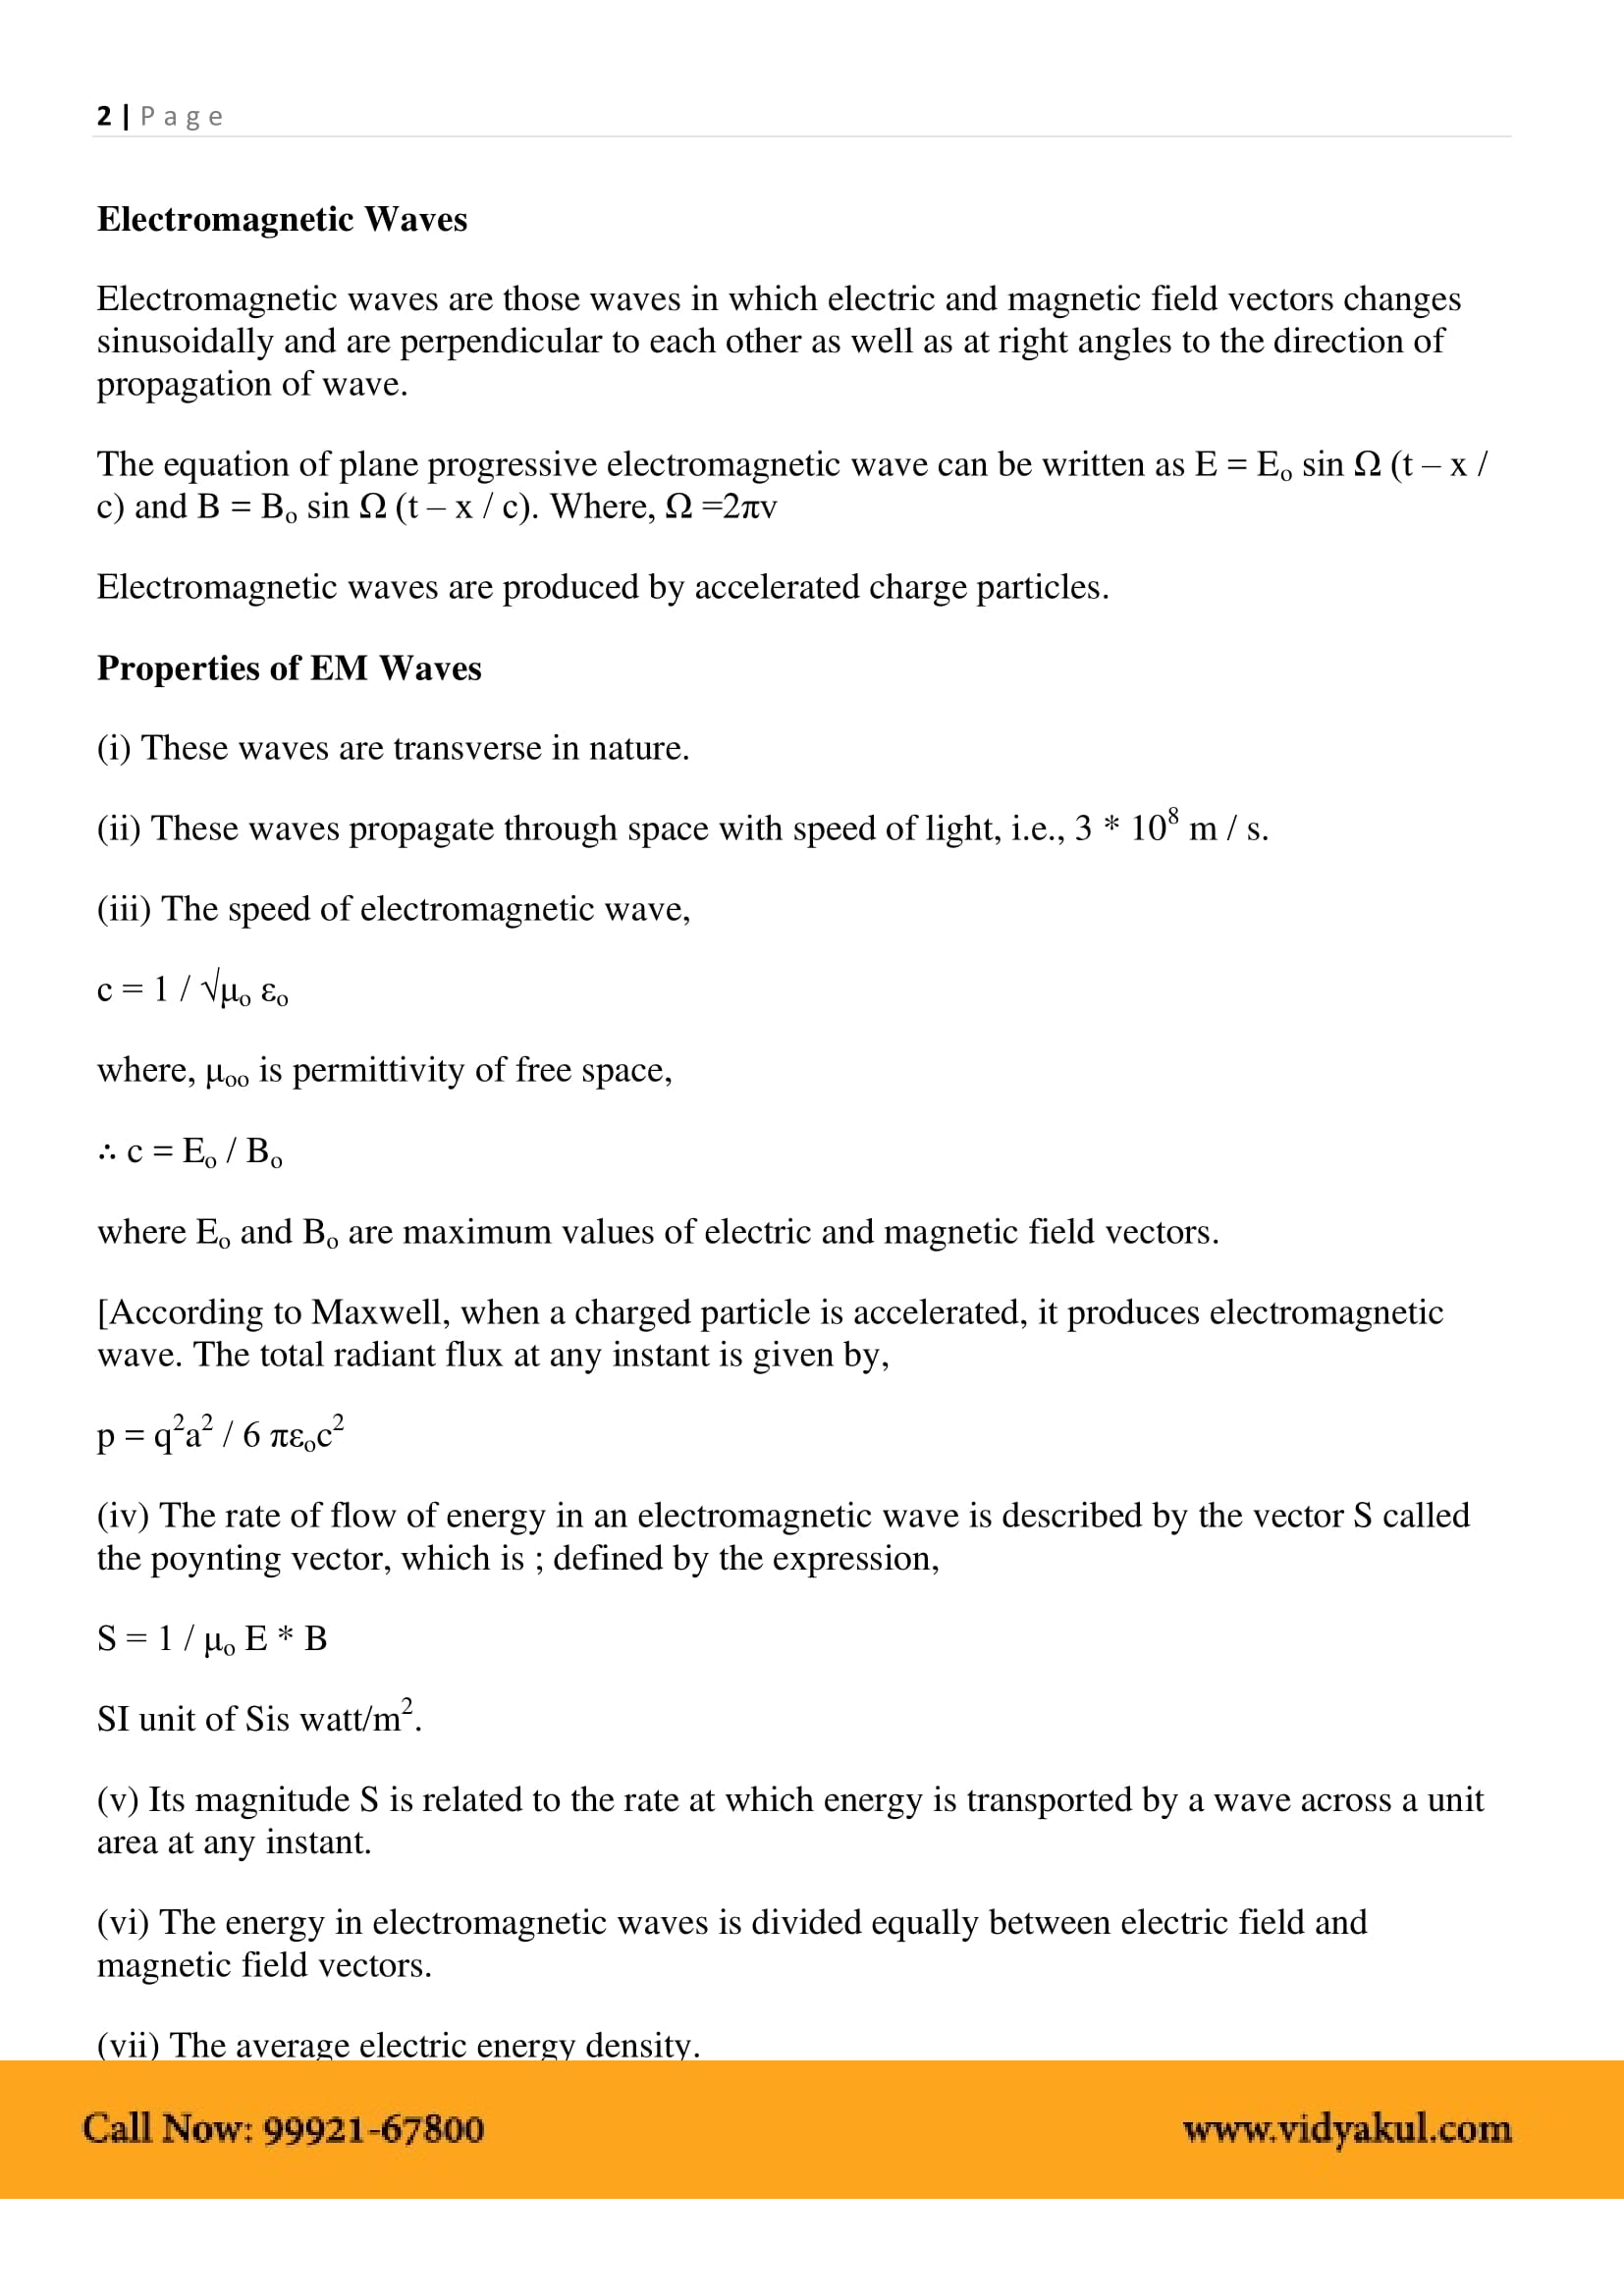 Electromagnetic Waves Class 12 Notes | Vidyakul